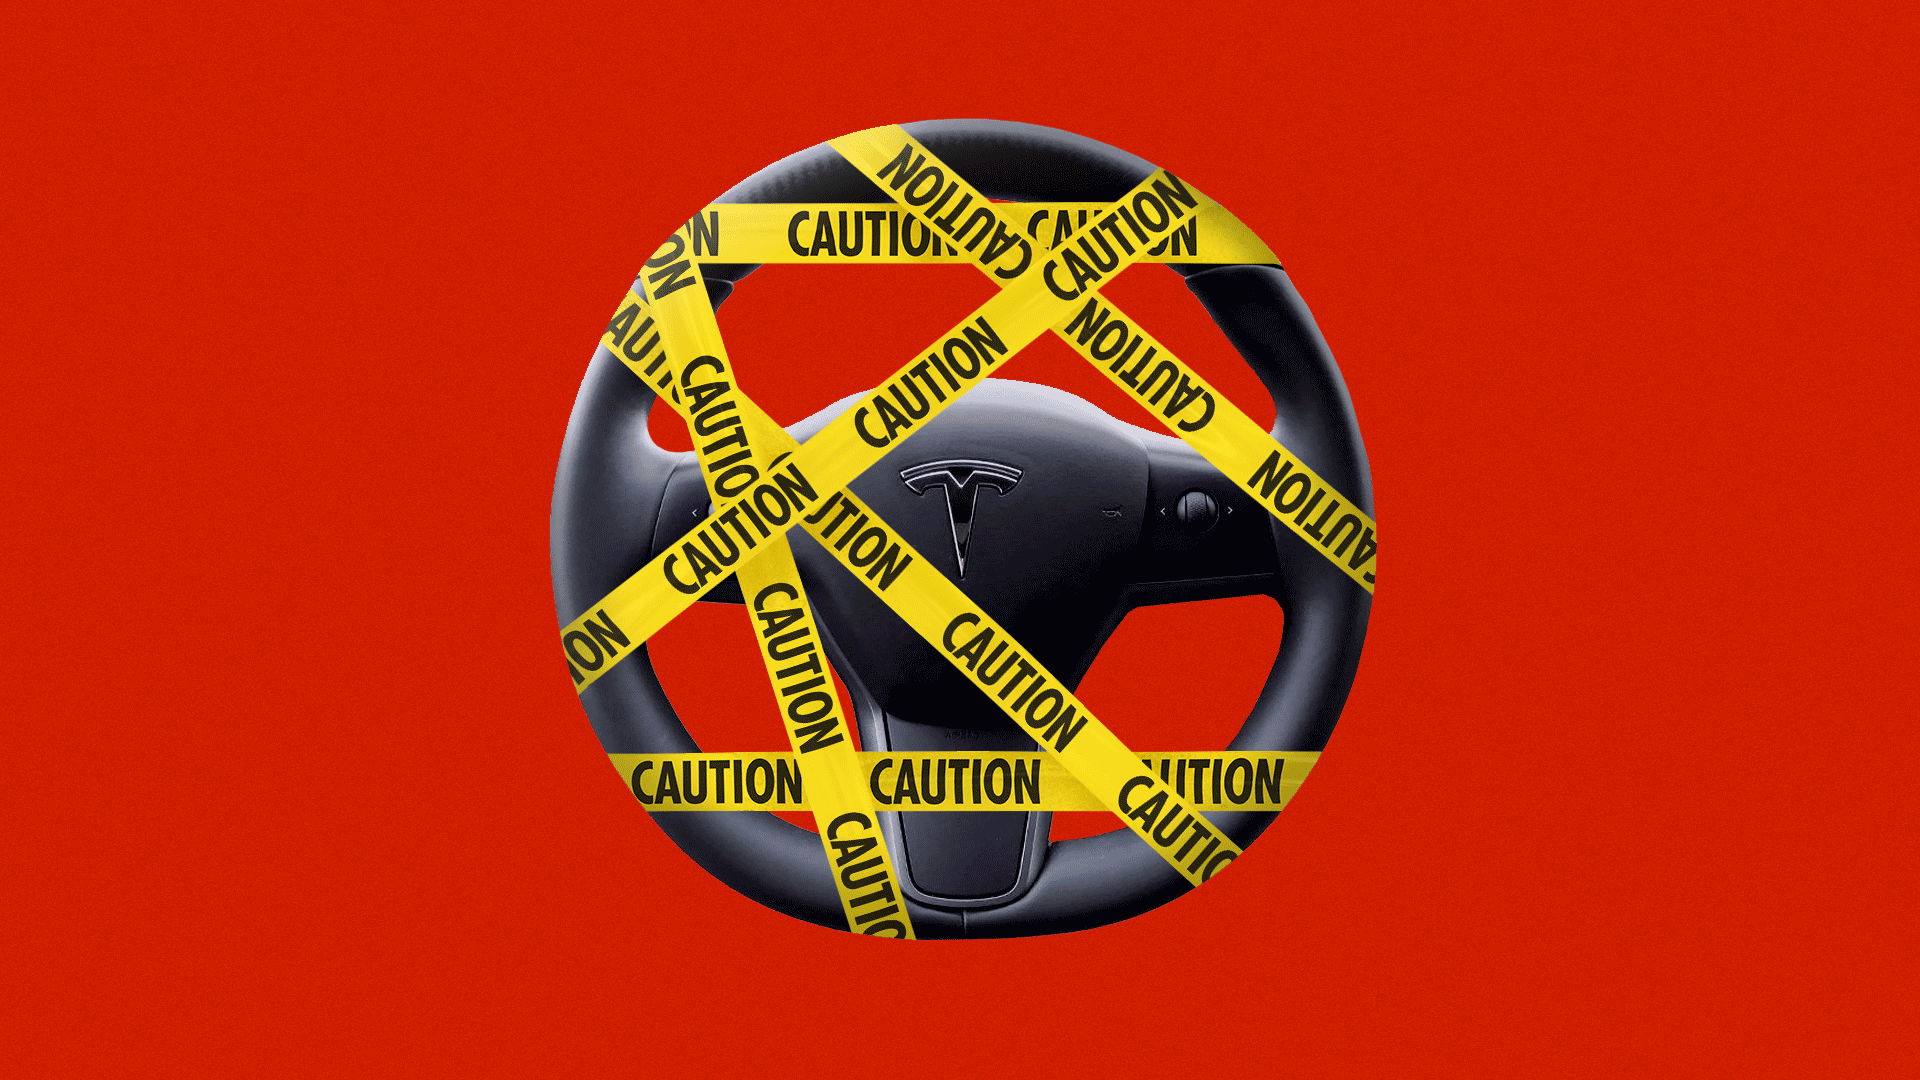 Illustration of a Tesla steering wheel covered in caution tape